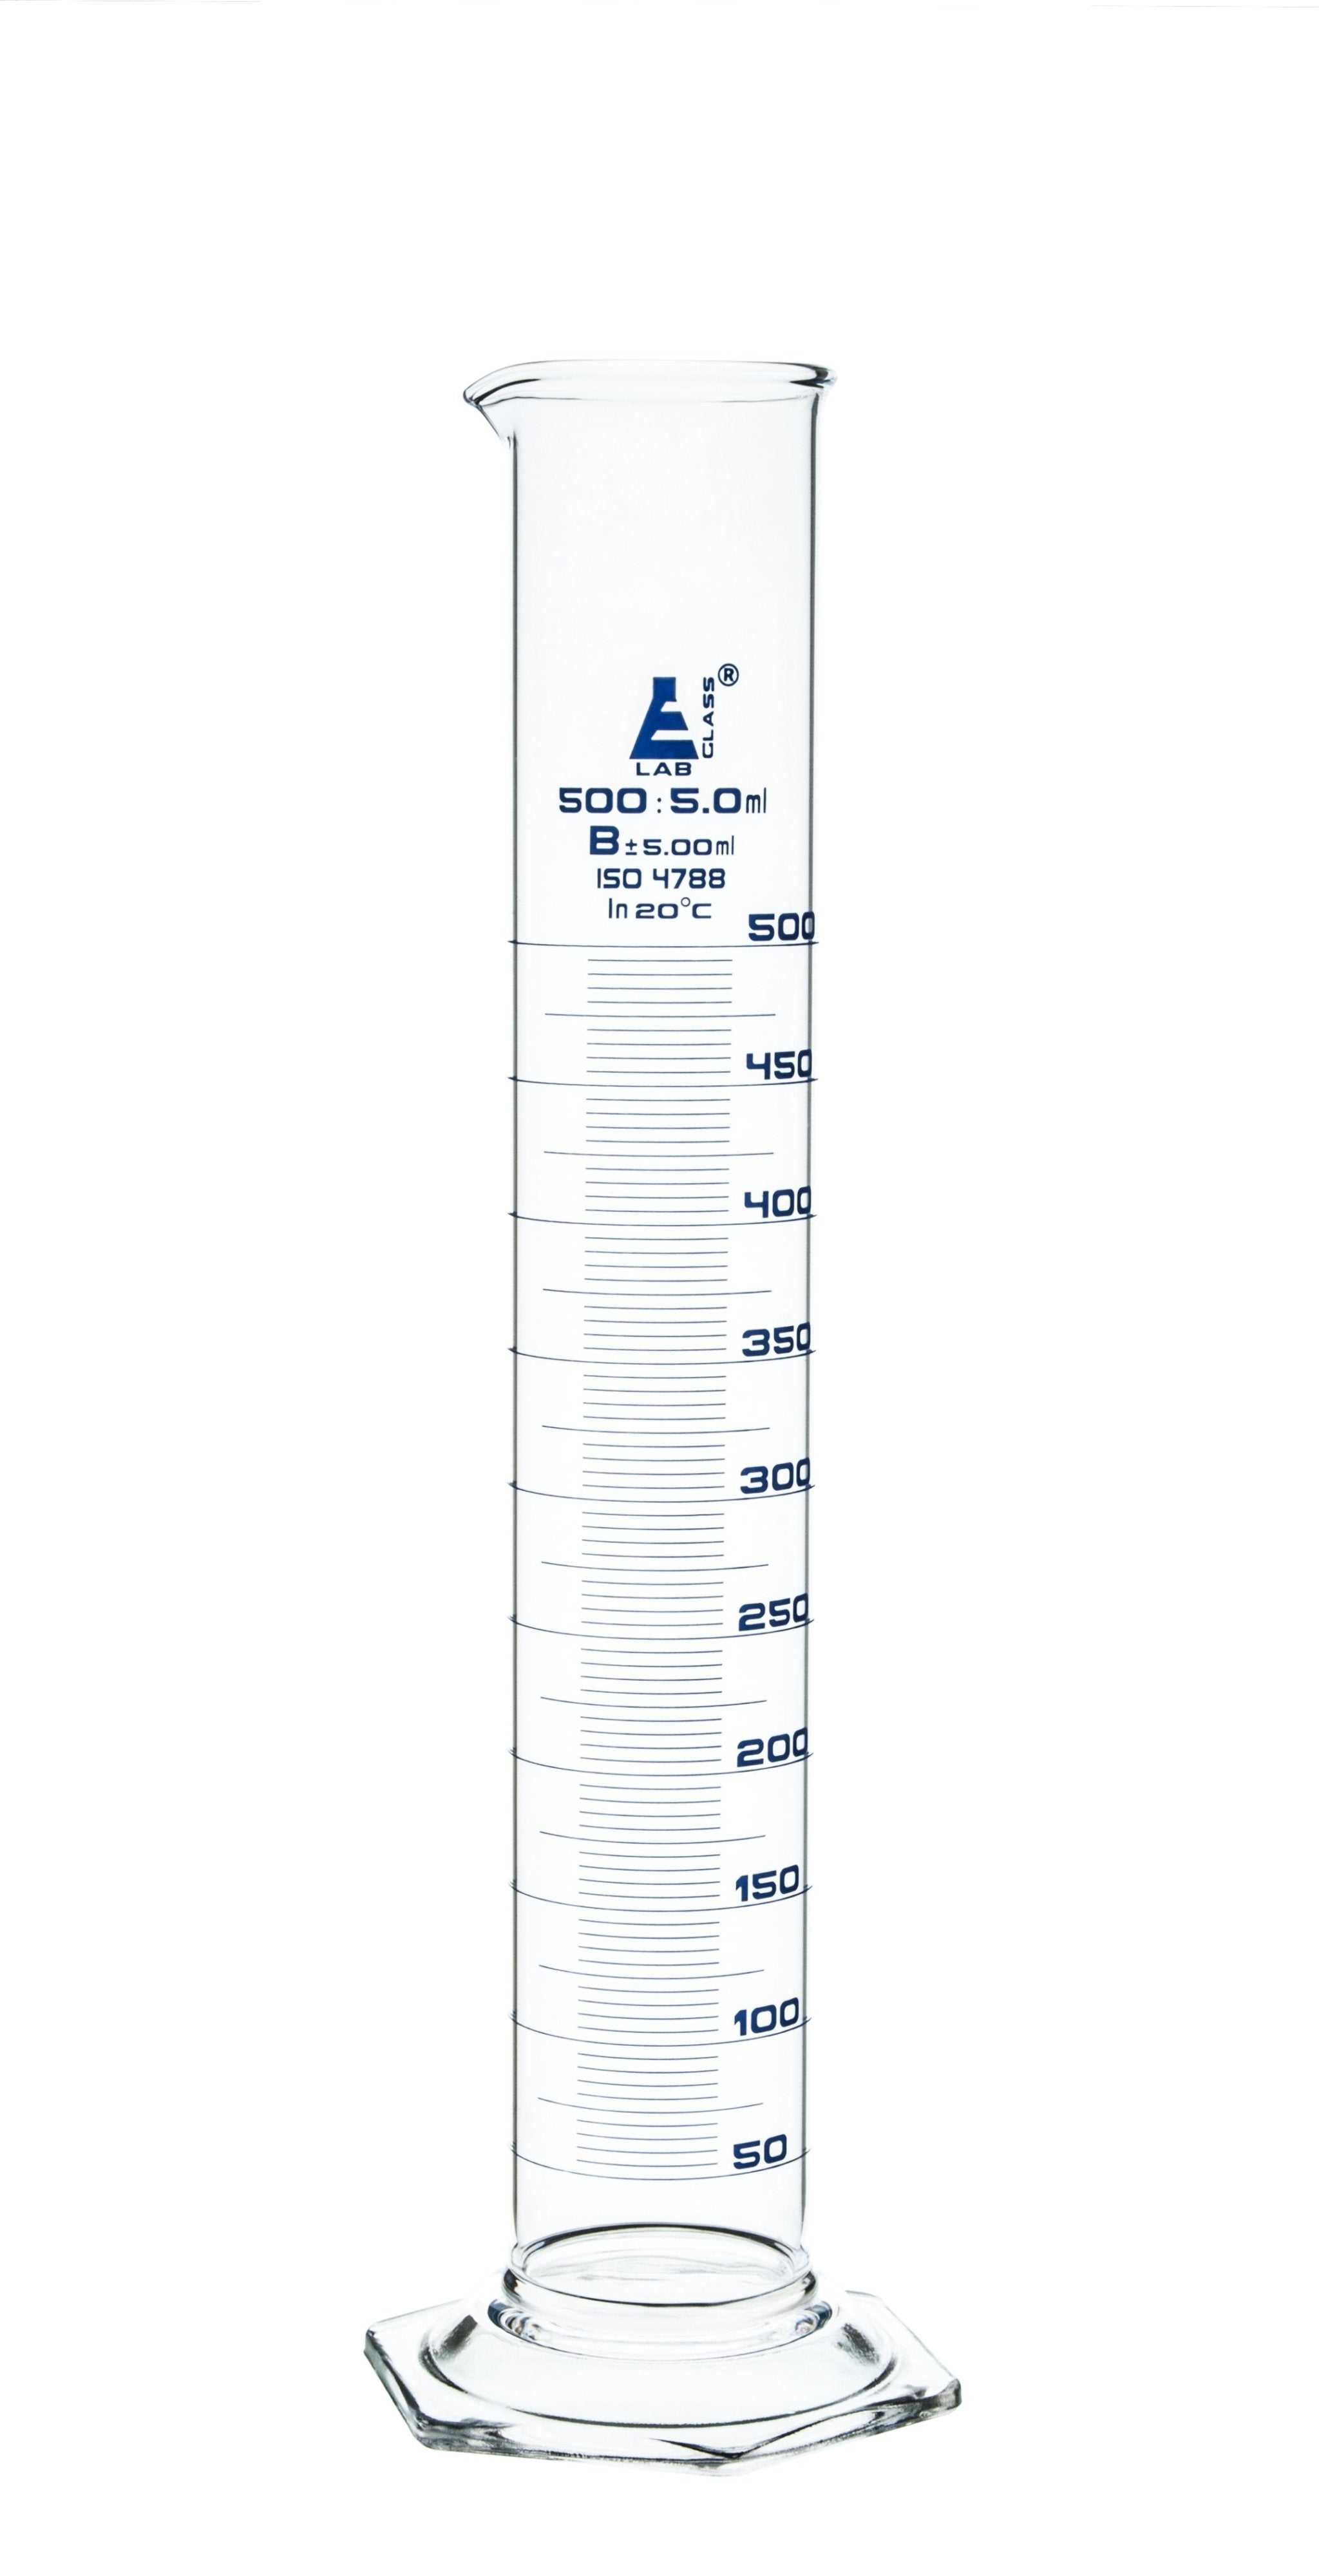 Borosilicate Glass Graduated Cylinder, 500 ml, 5.0 ml Graduation, Class B, Autoclavable